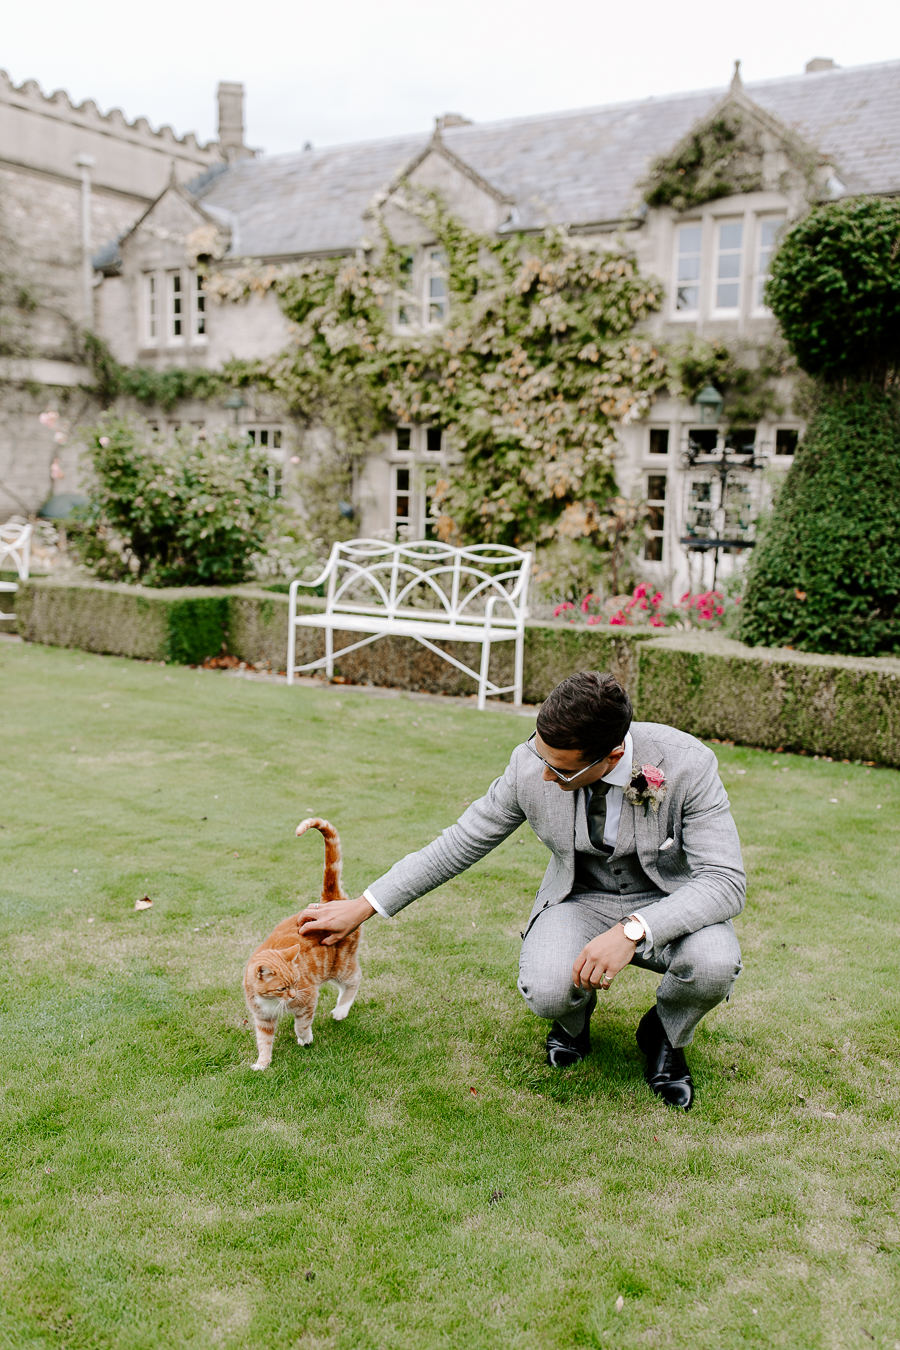 A magical wiltshire wedding venue - the Lost Orangery with Sam Cook Photography (34)